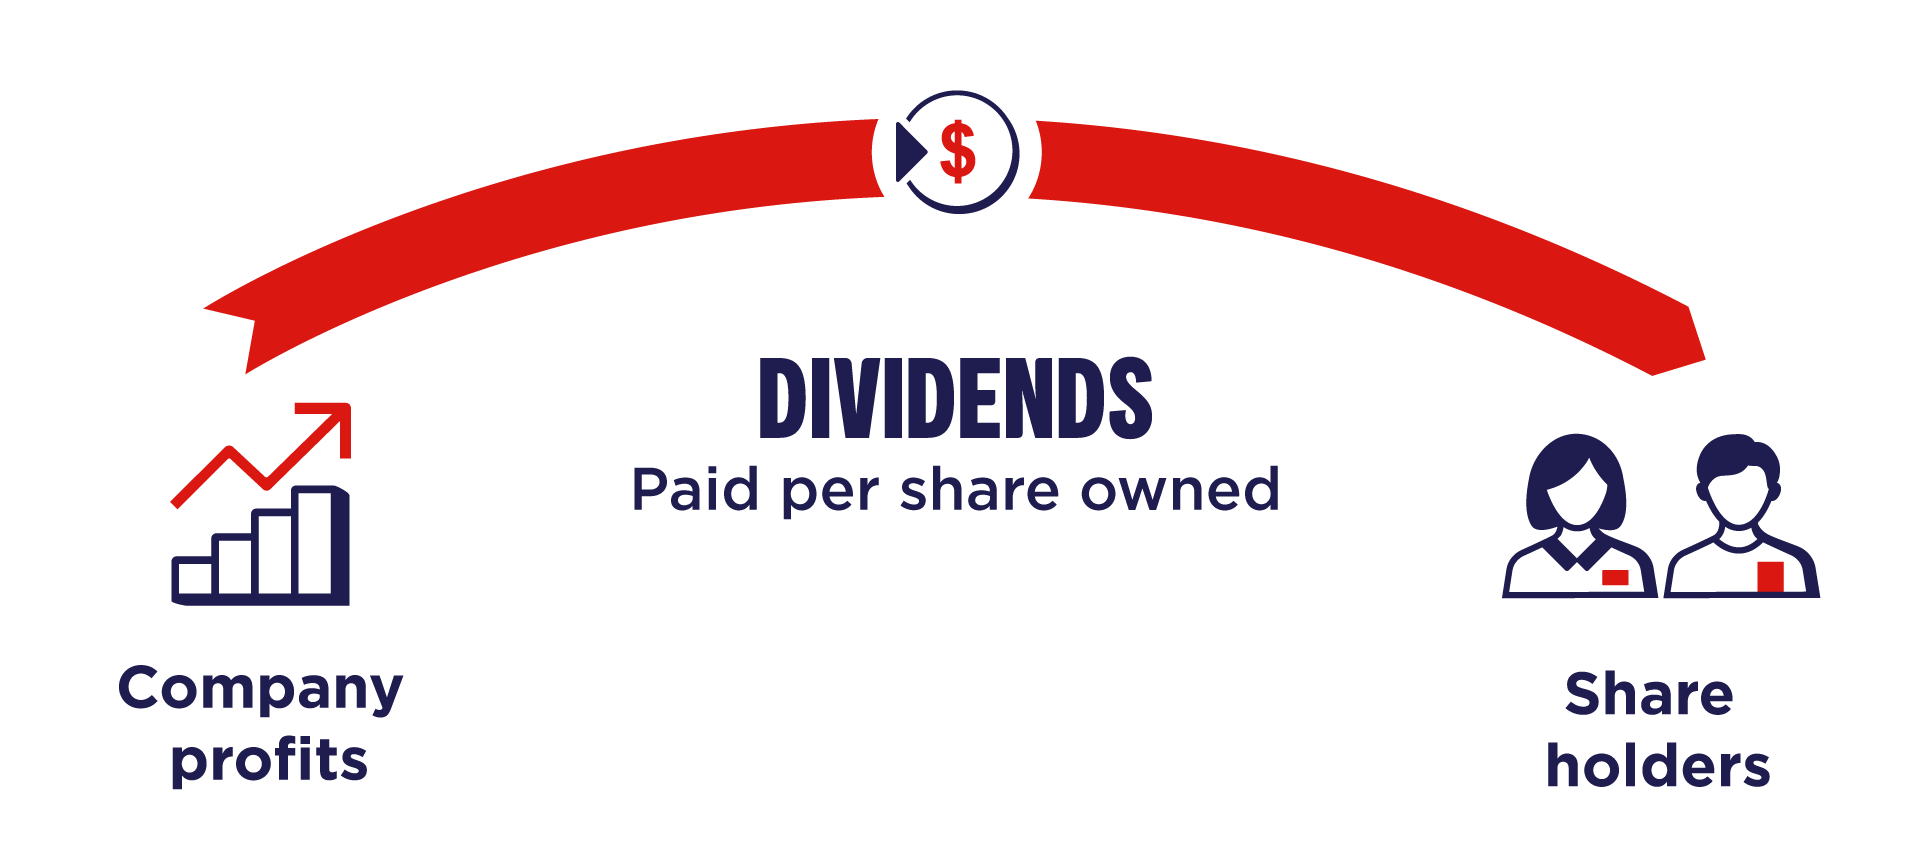 Dividends are a portion of company profits divided and paid to shareholders per share owned.